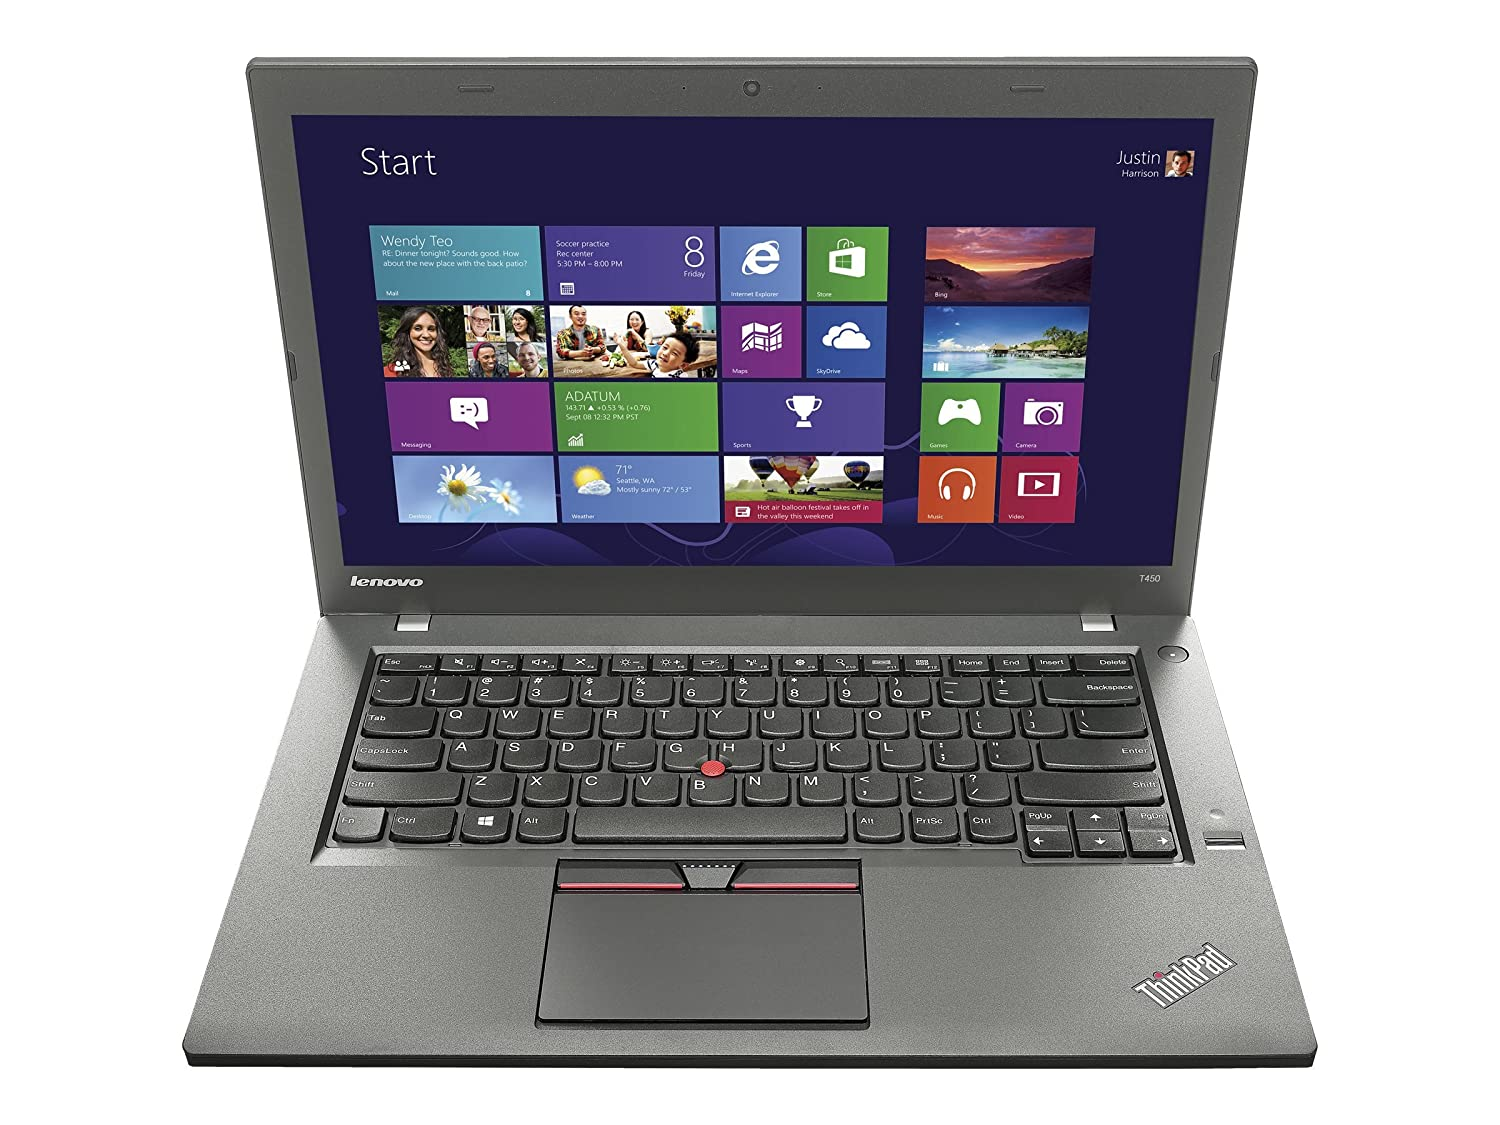 Lenovo ThinkPad T450 - Ordenador portátil (i5-5300U, ThinkPad UltraNav, Windows 7 Professional, Ión de litio, 64 bits, Windows 8.1 Pro): Amazon.es: ...